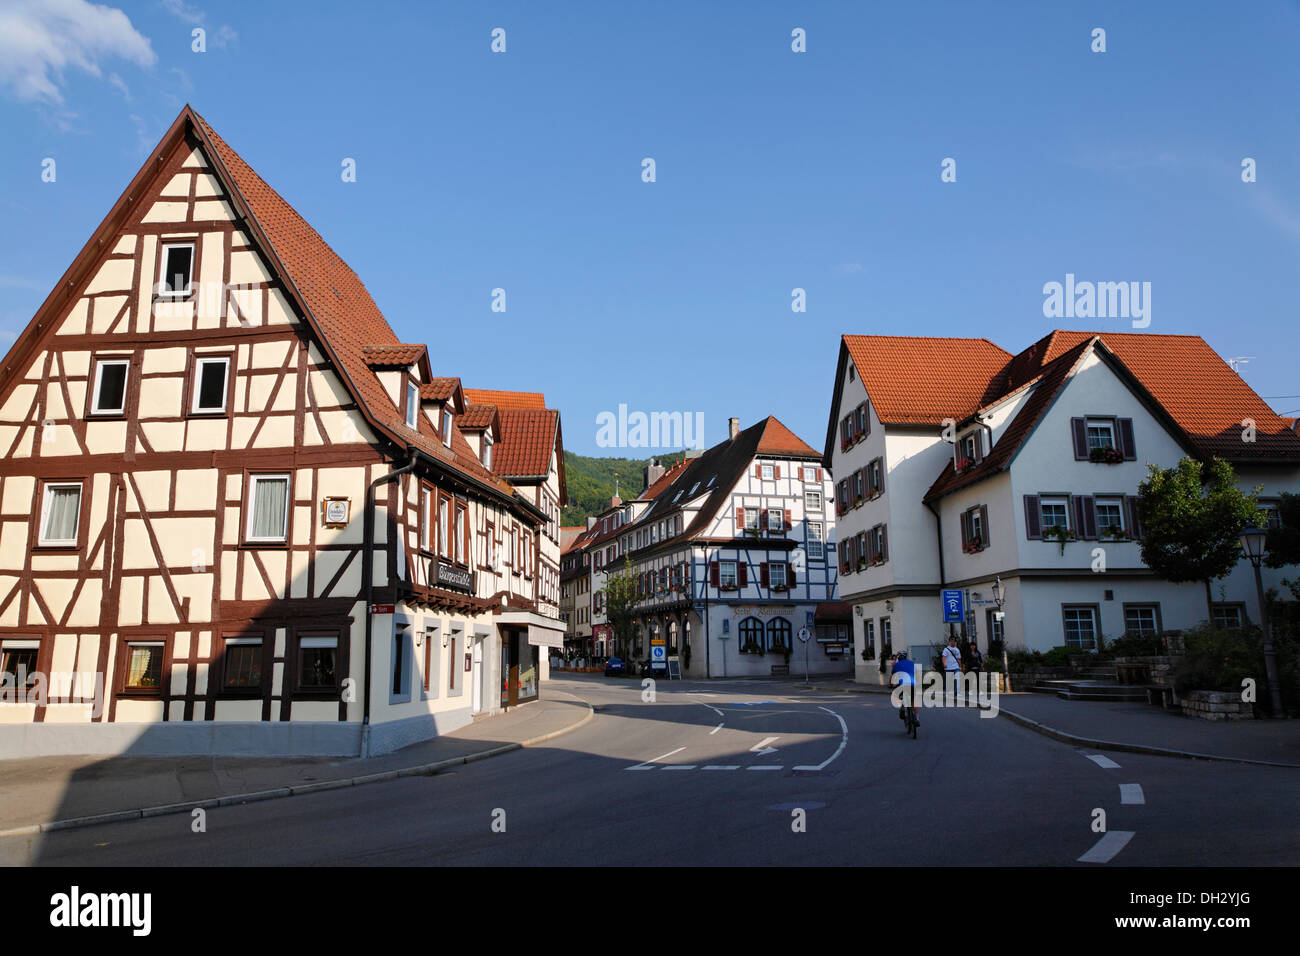 germany baden wuerttemberg bad urach half timbered house street stock photo royalty free. Black Bedroom Furniture Sets. Home Design Ideas